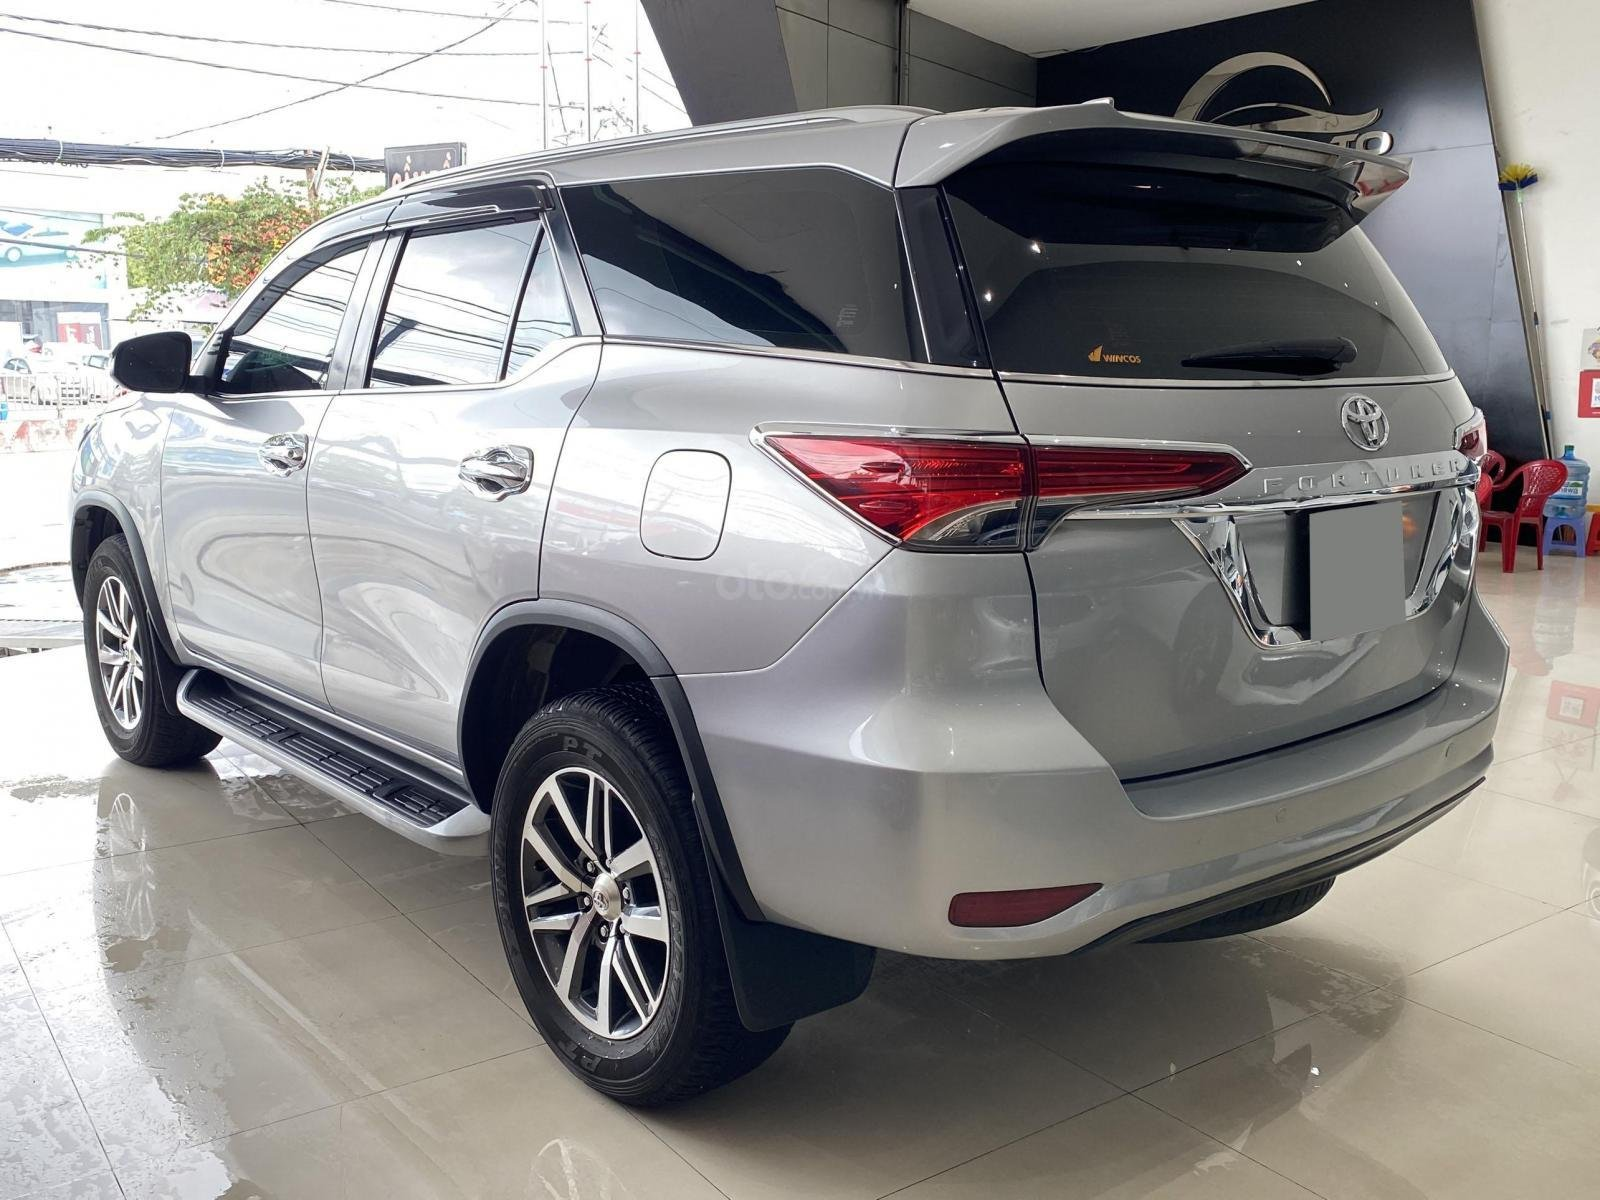 Bán xe Toyota Fortuner AT 2.7 2017 Full xăng 2 cầu (4)